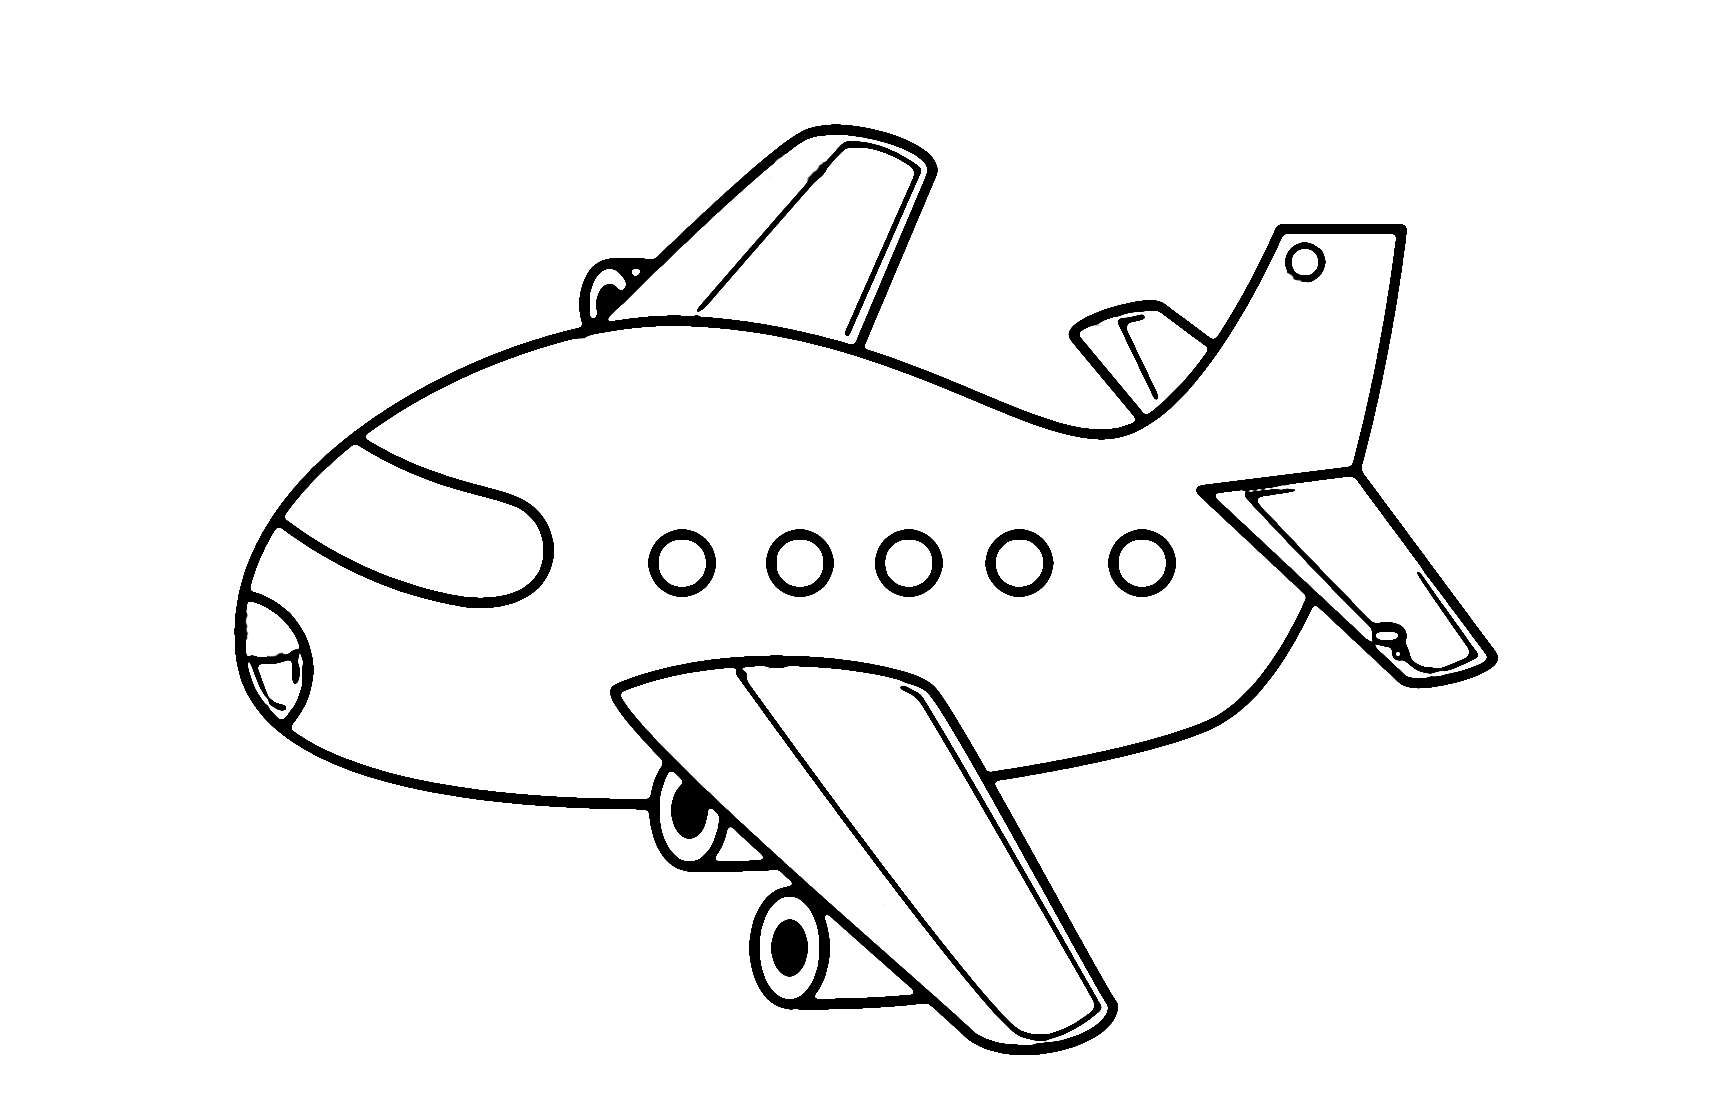 coloring airplane for kids free printable airplane coloring pages for kids cool2bkids airplane for kids coloring